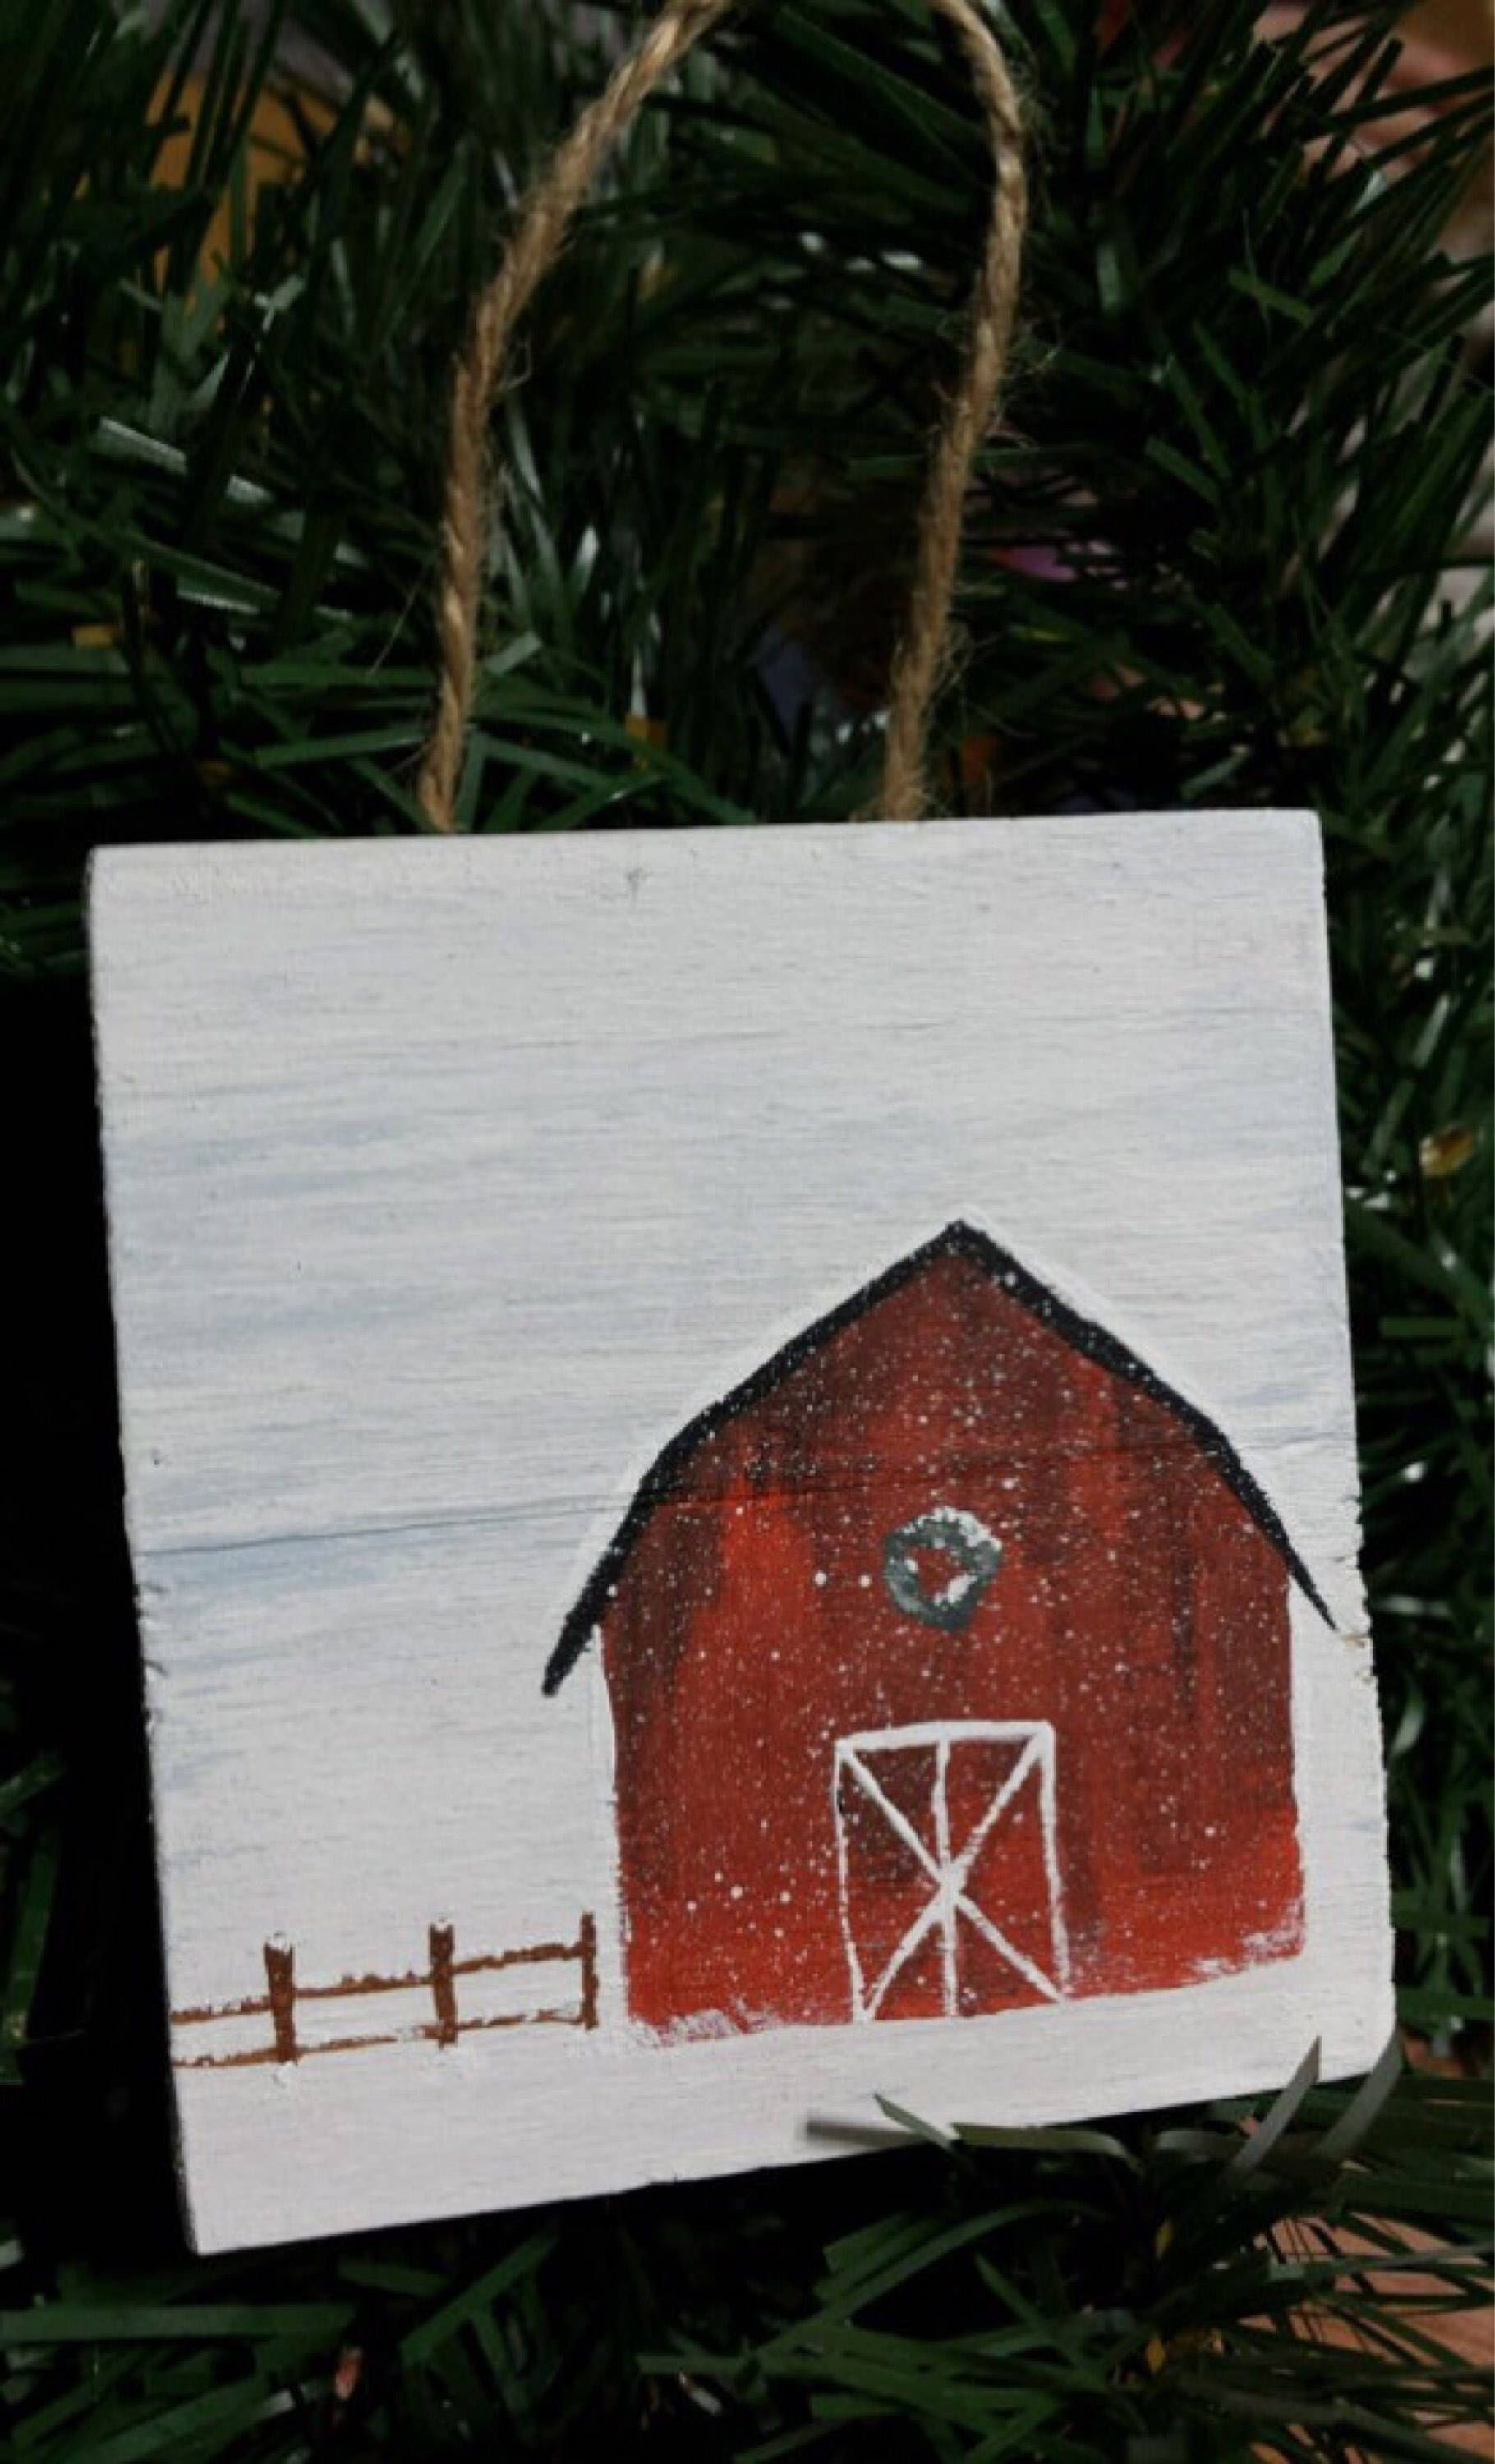 "Snowy Barn Farm Scene Wooden Christmas Ornament, Rustic, Farmhouse, Cottage, 3"" x 3"" Ornament or Small Sign, Pallet Sign Winter Office Decor by Khicktiques on Etsy https://www.etsy.com/listing/526996630/snowy-barn-farm-scene-wooden-christmas"